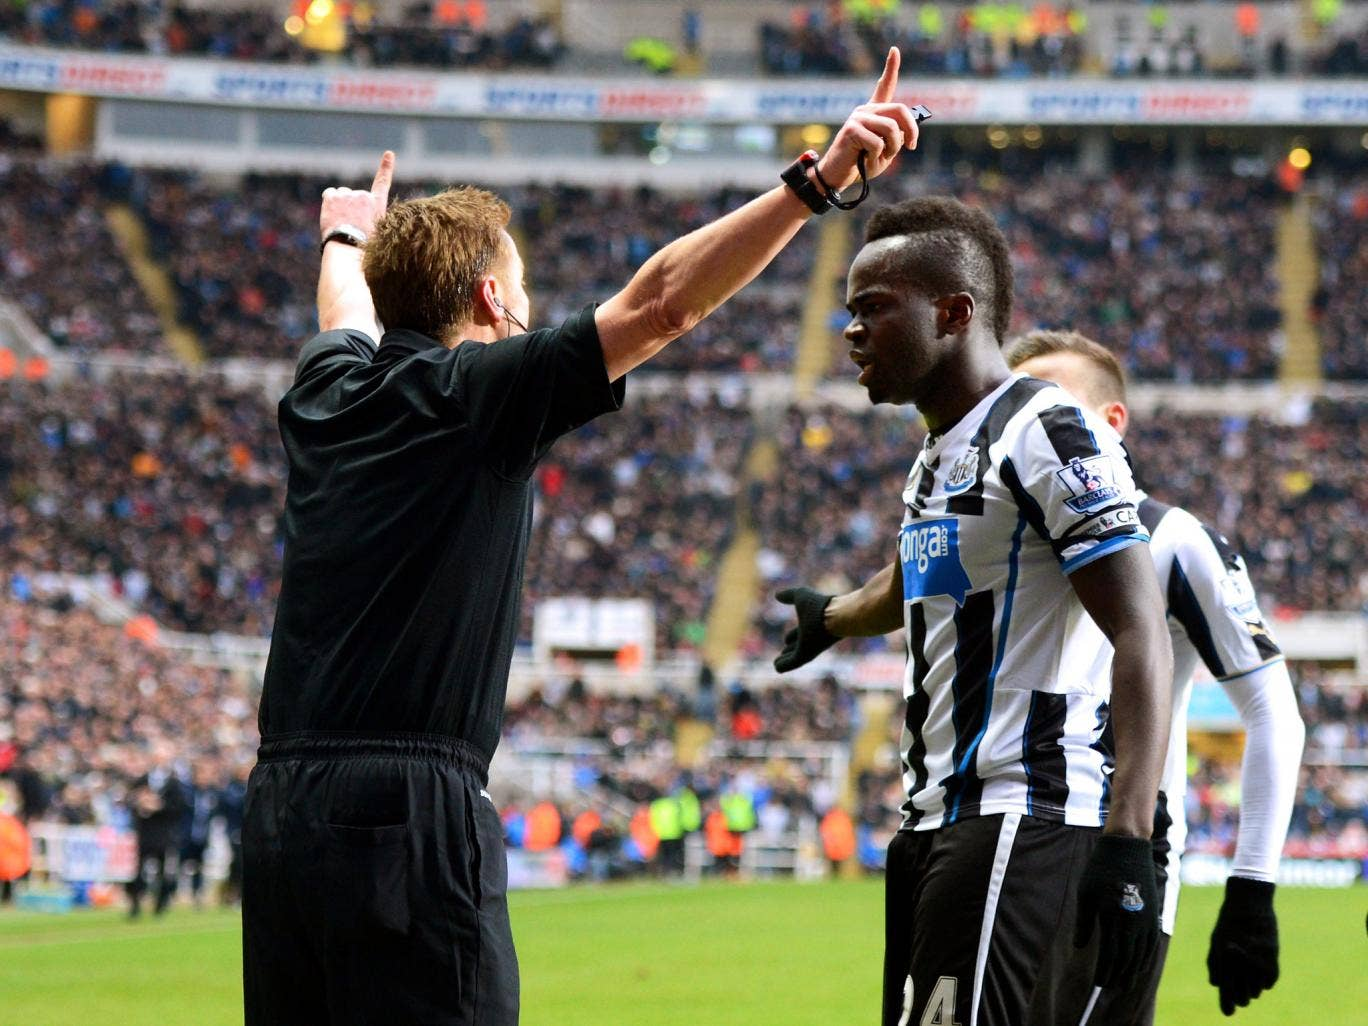 Cheik Ismael Tiote of Newcastle remonstrates with Referee Mike Jones after his goal is disallowed for offside